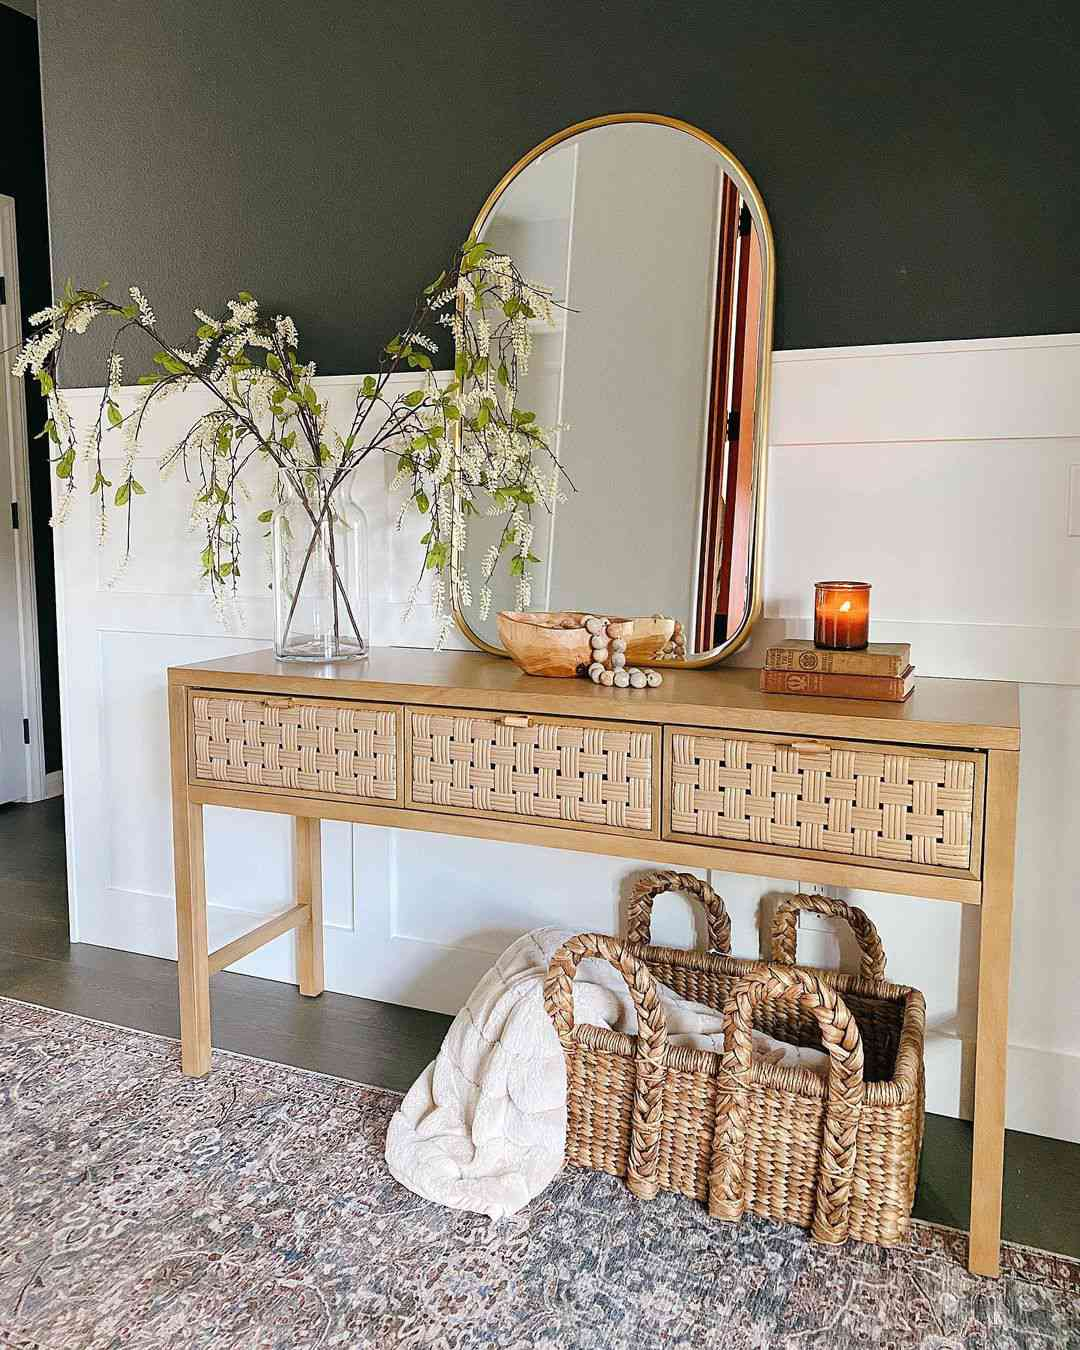 Boho rustic entryway table with mirror and plant.